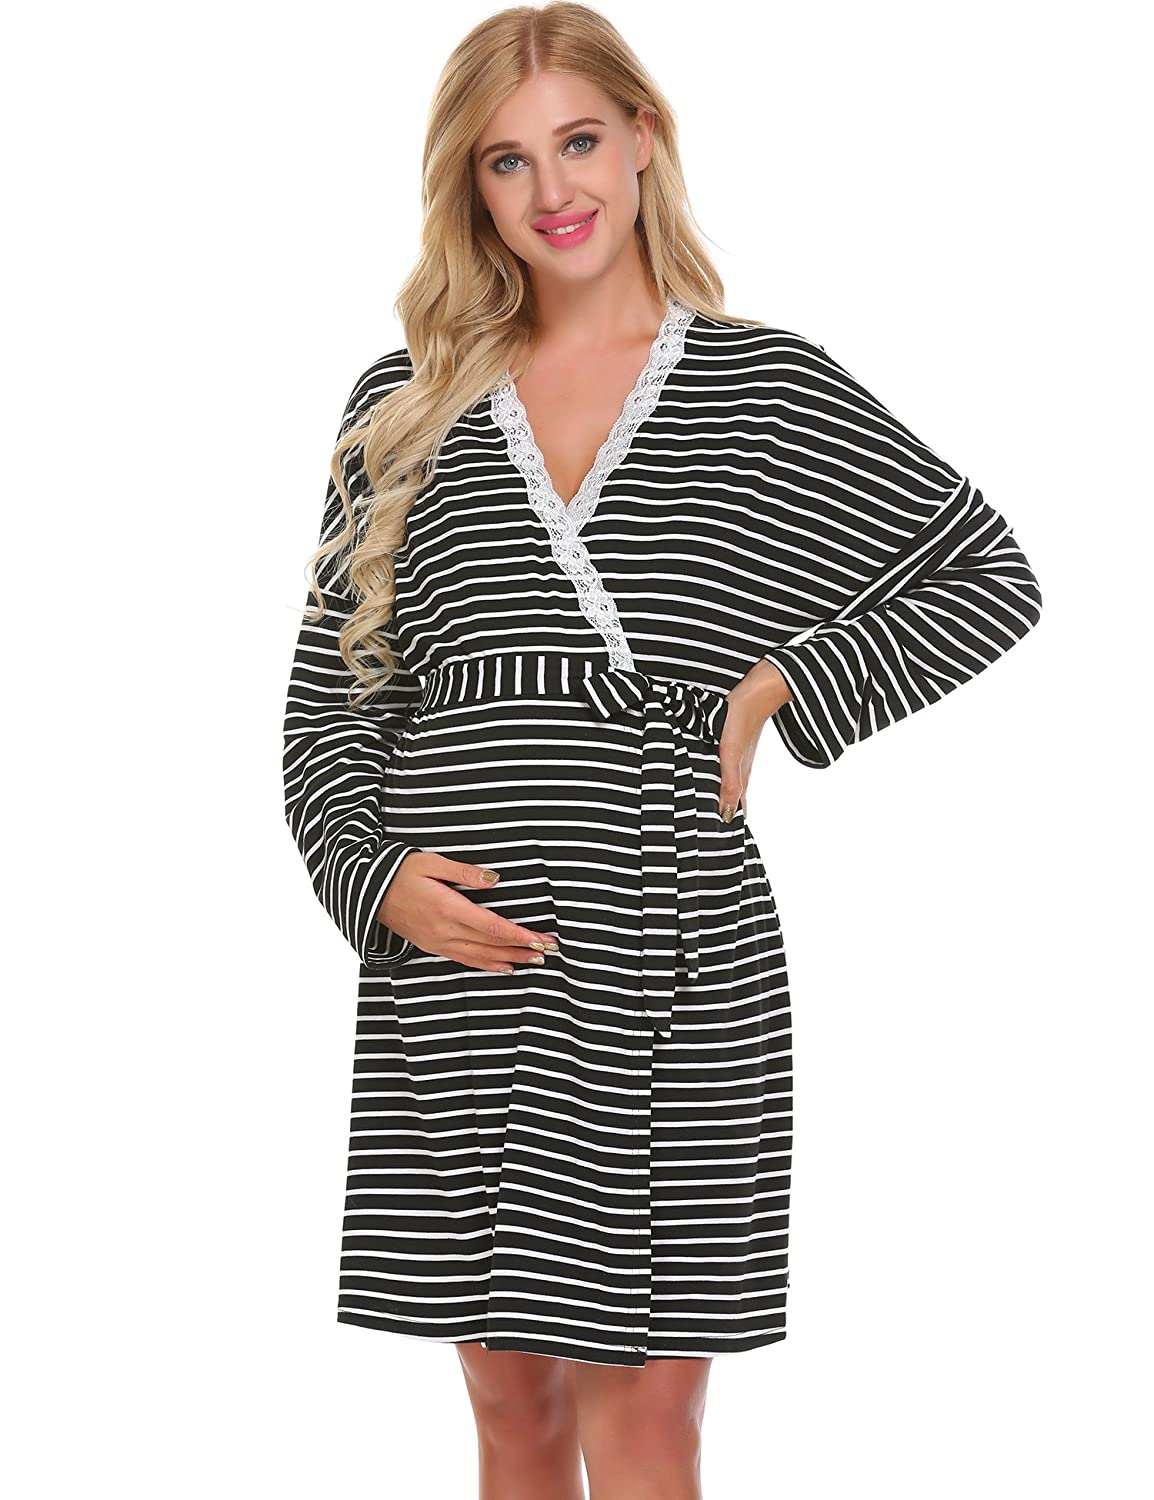 Maternity nursing dresses amazon maternity nursing dresses ombrellifo Gallery